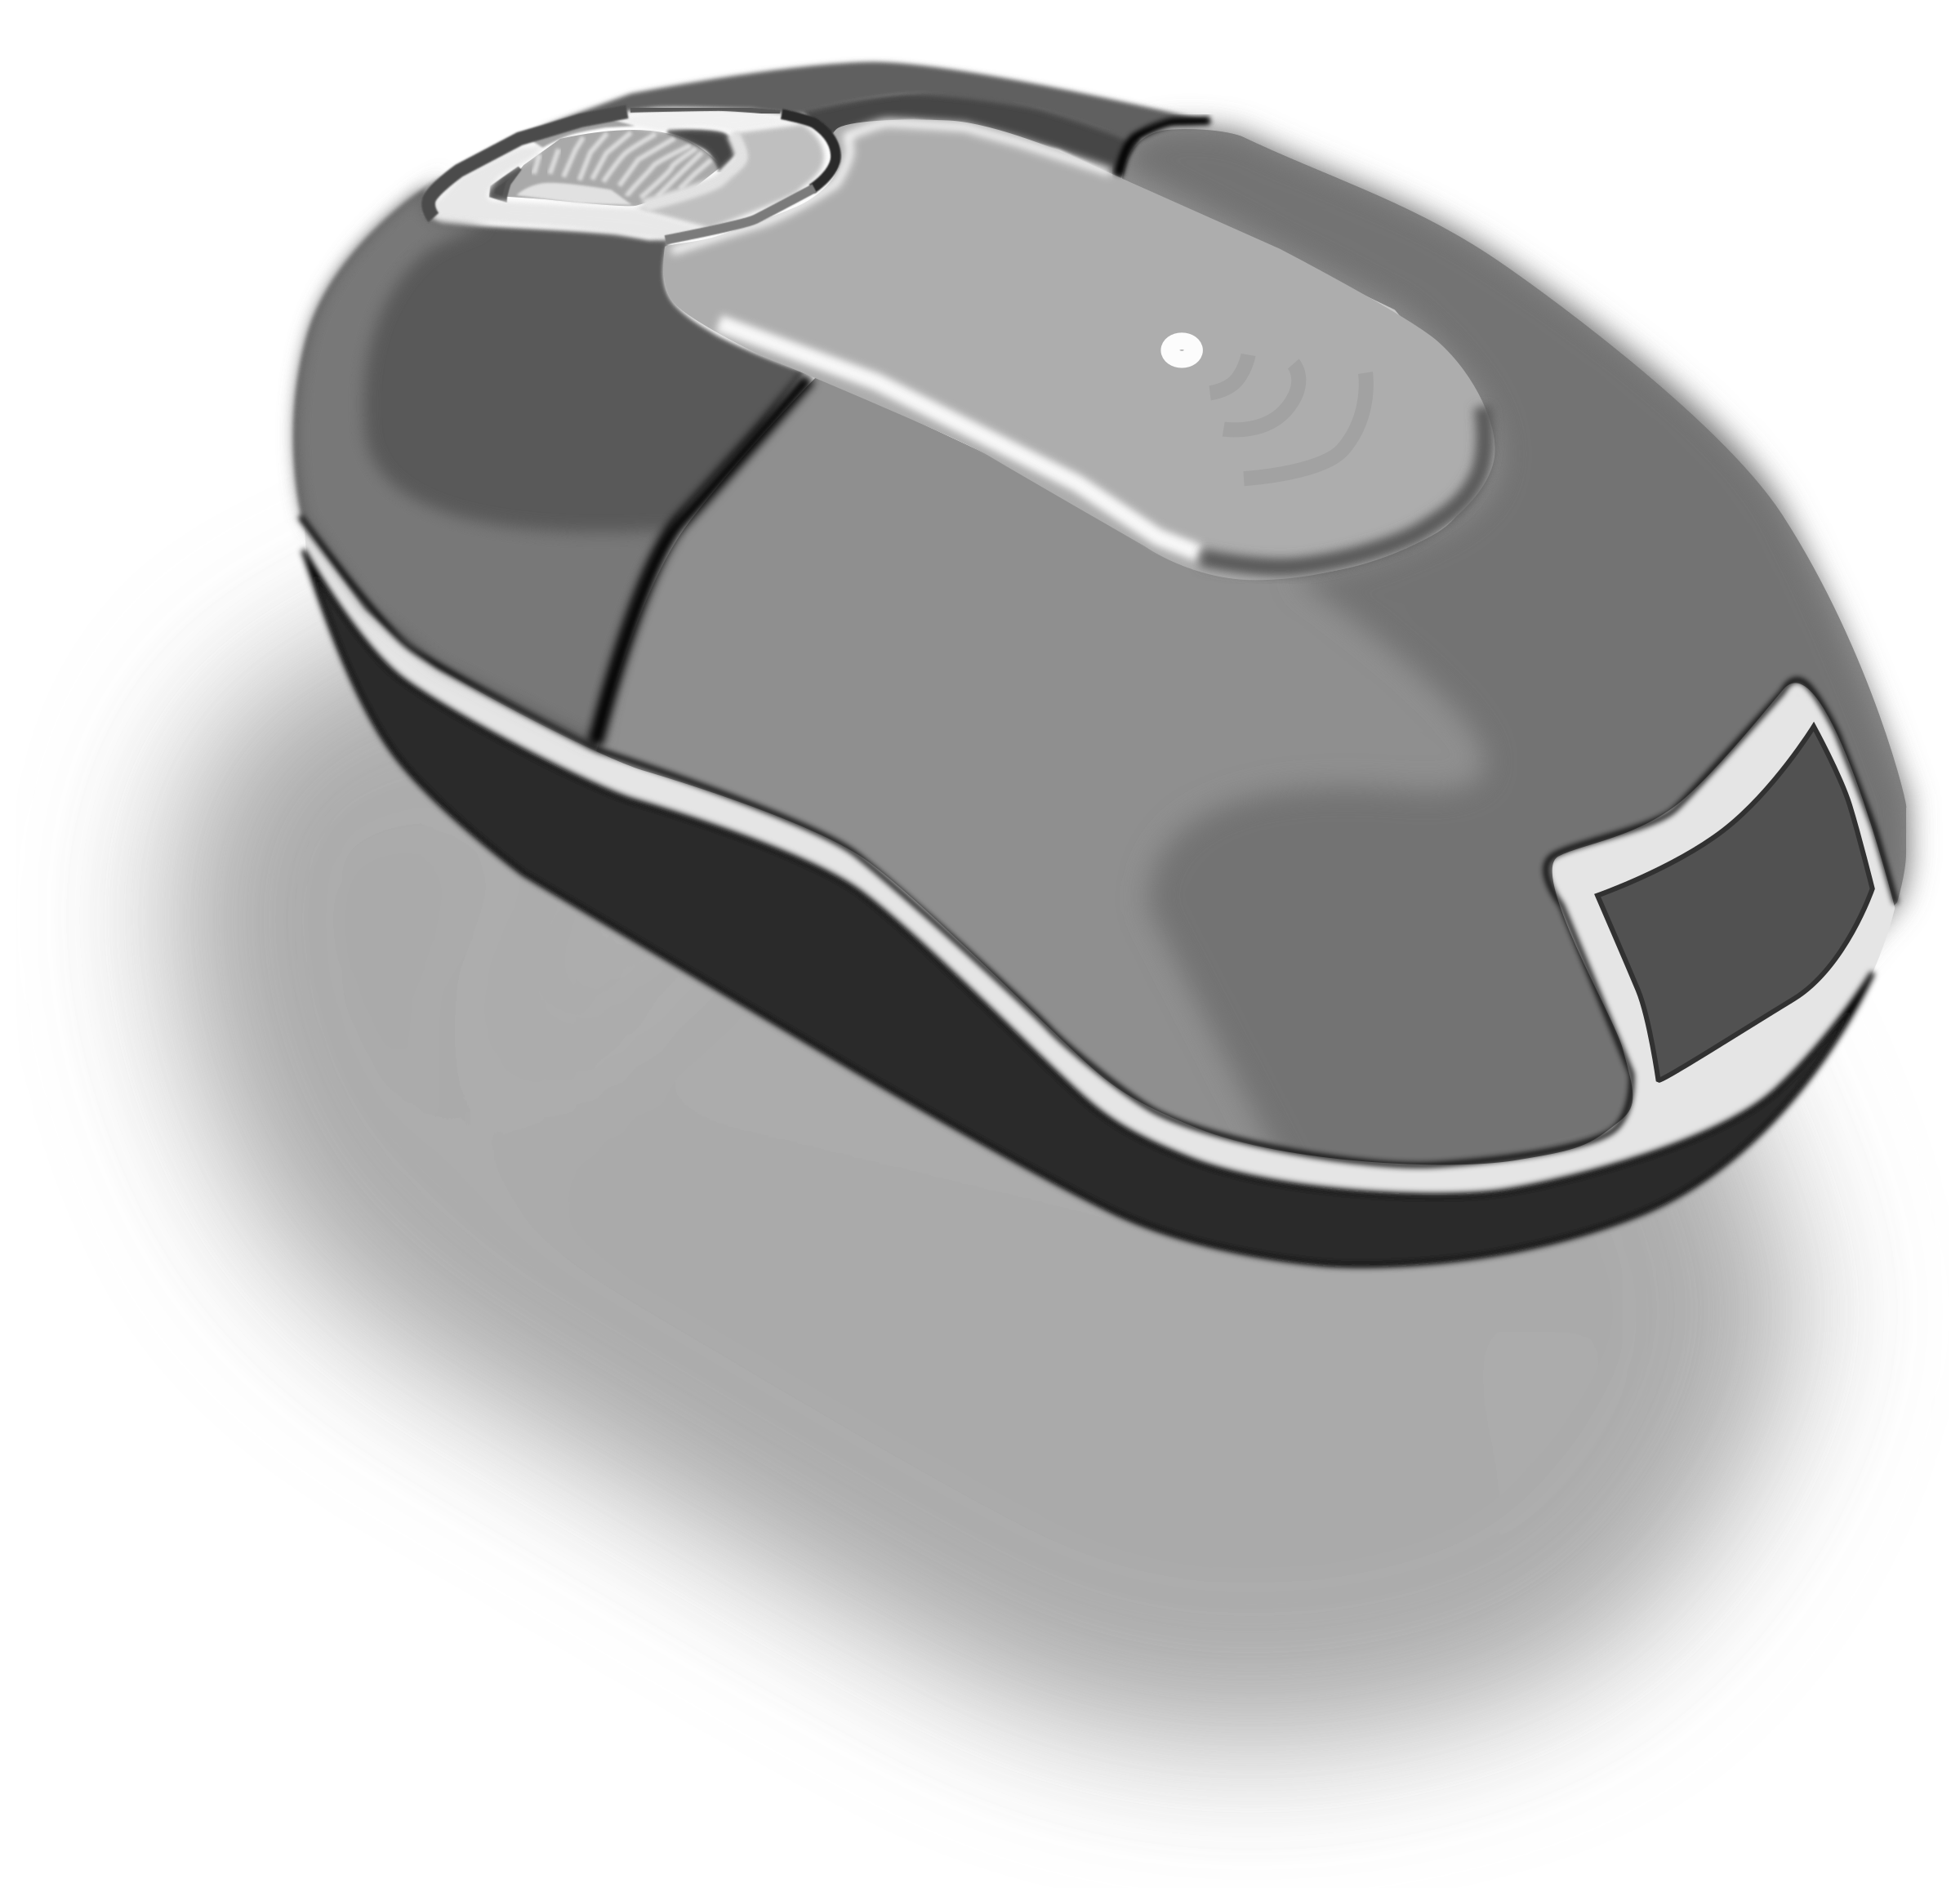 Technology clipart computer hardware (Hardware) Mouse Clipart Mouse (Hardware)